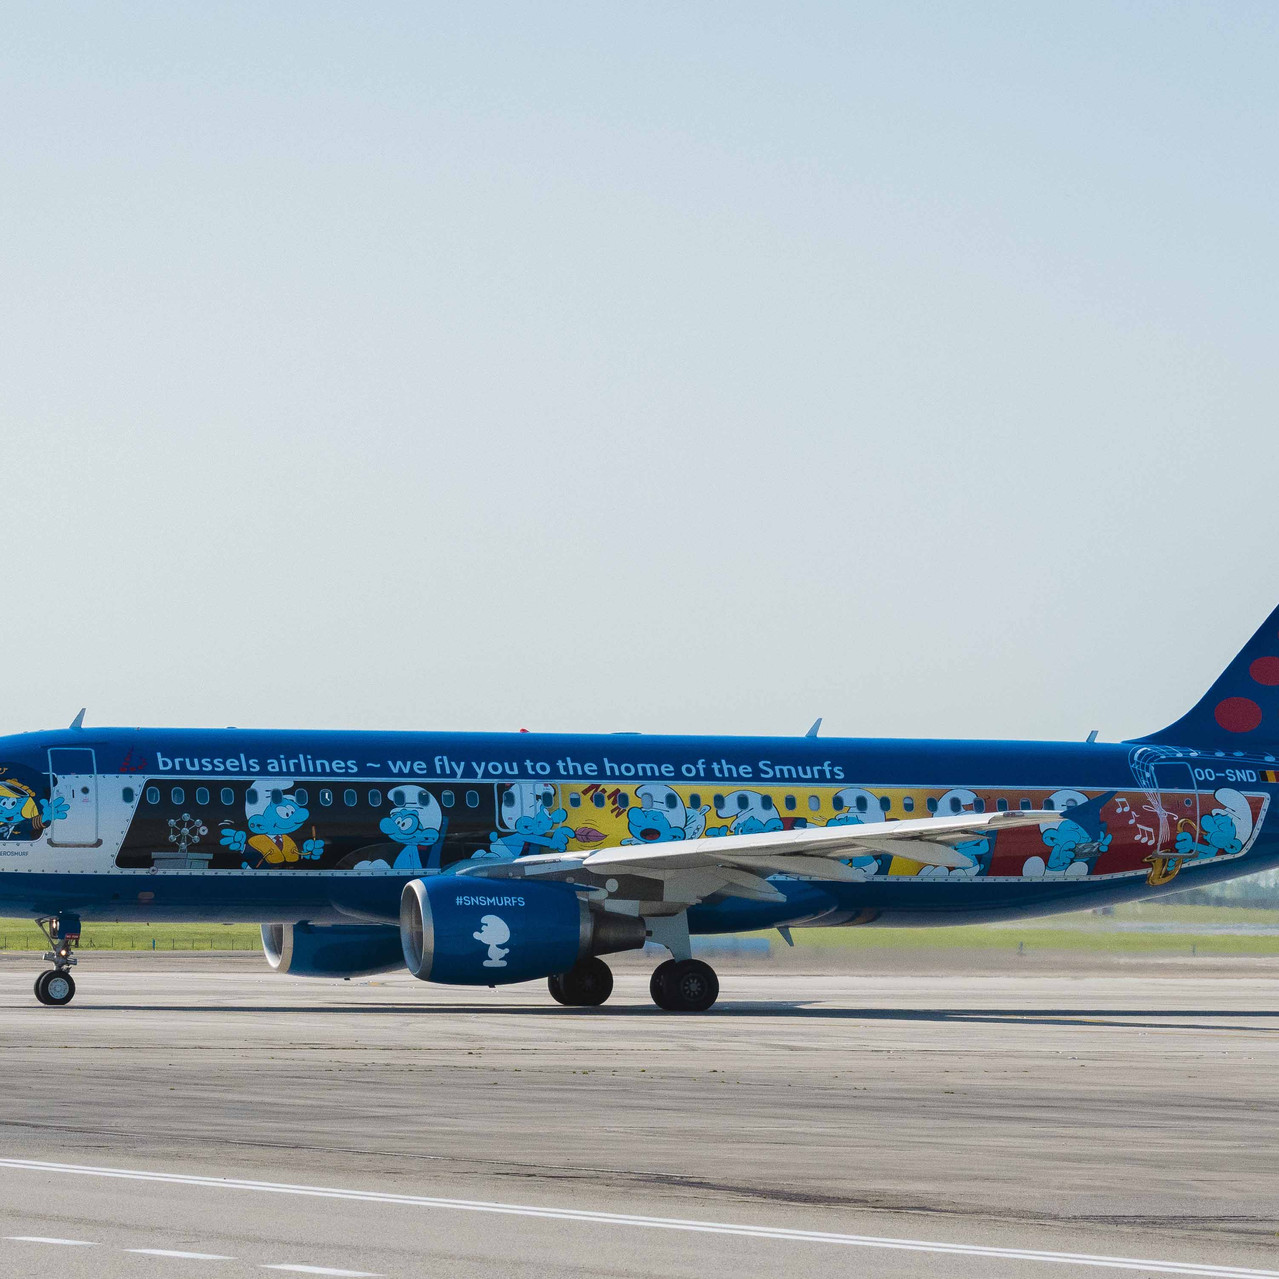 009_Brussels Airlines_smurfs